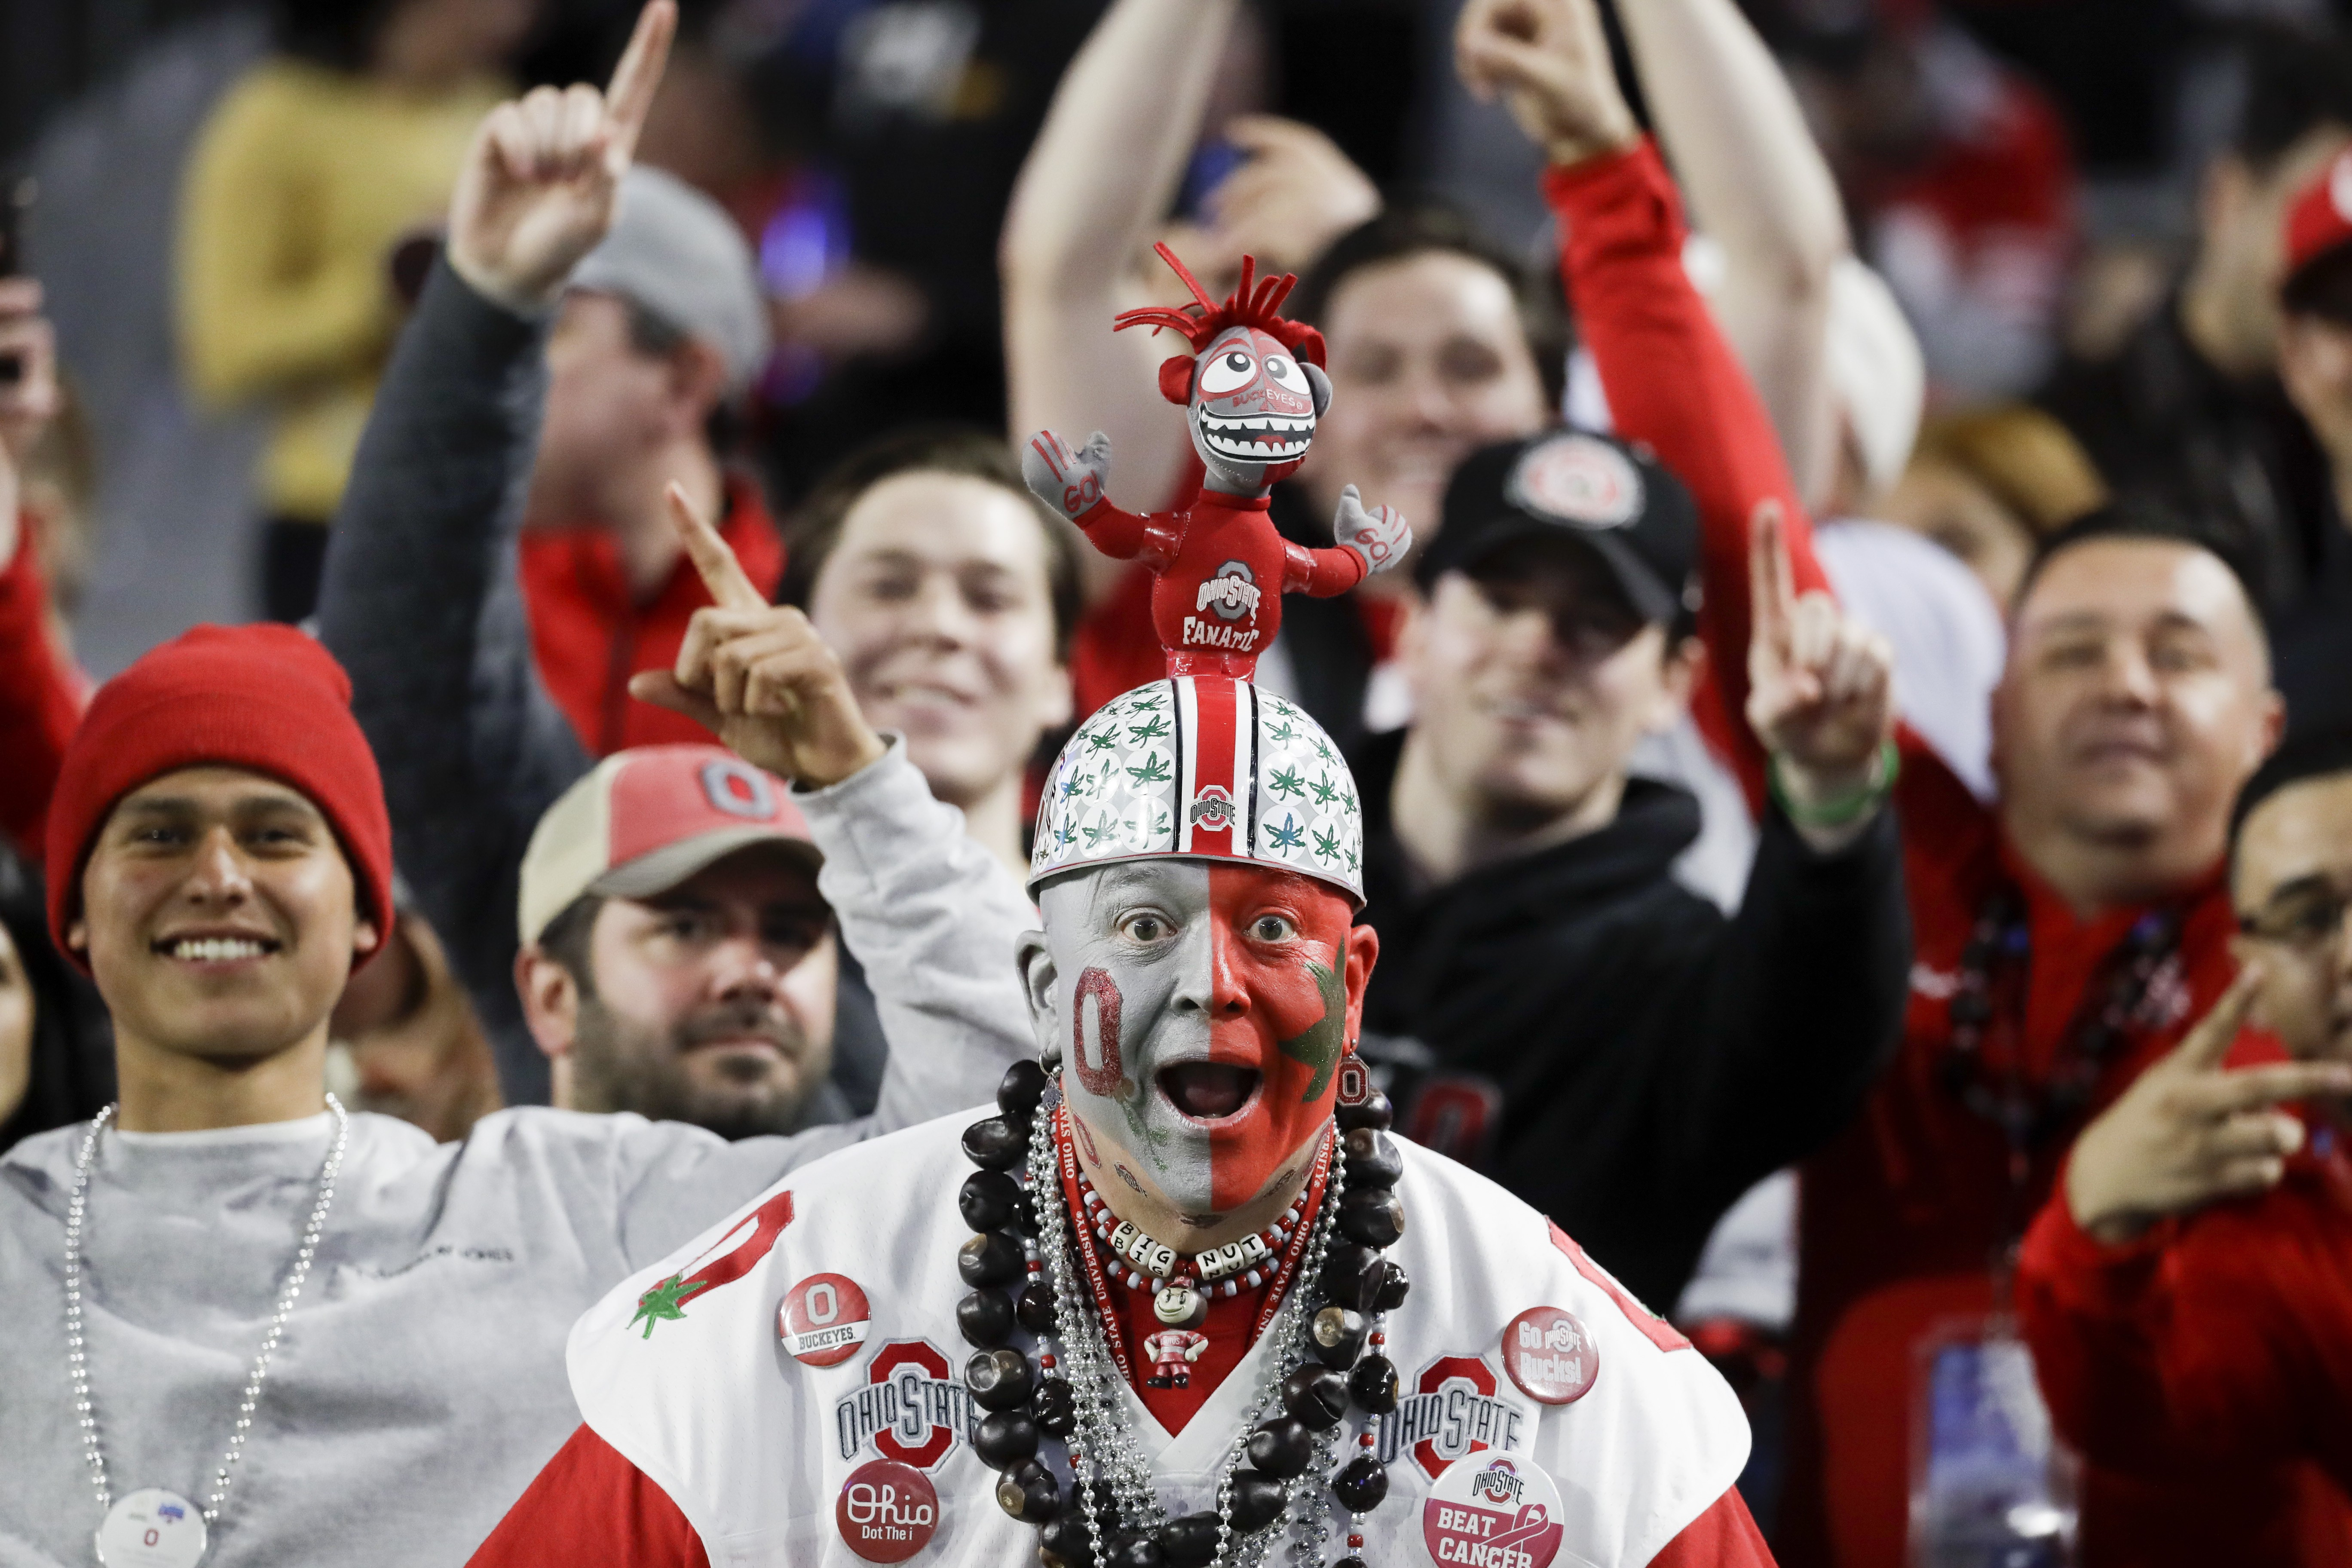 Am Ohio State fan watches players warm up for the Fiesta Bowl NCAA college football game between Ohio State and Clemson on Saturday, Dec. 28, 2019, in Glendale, Ariz. (AP Photo/Rick Scuteri)